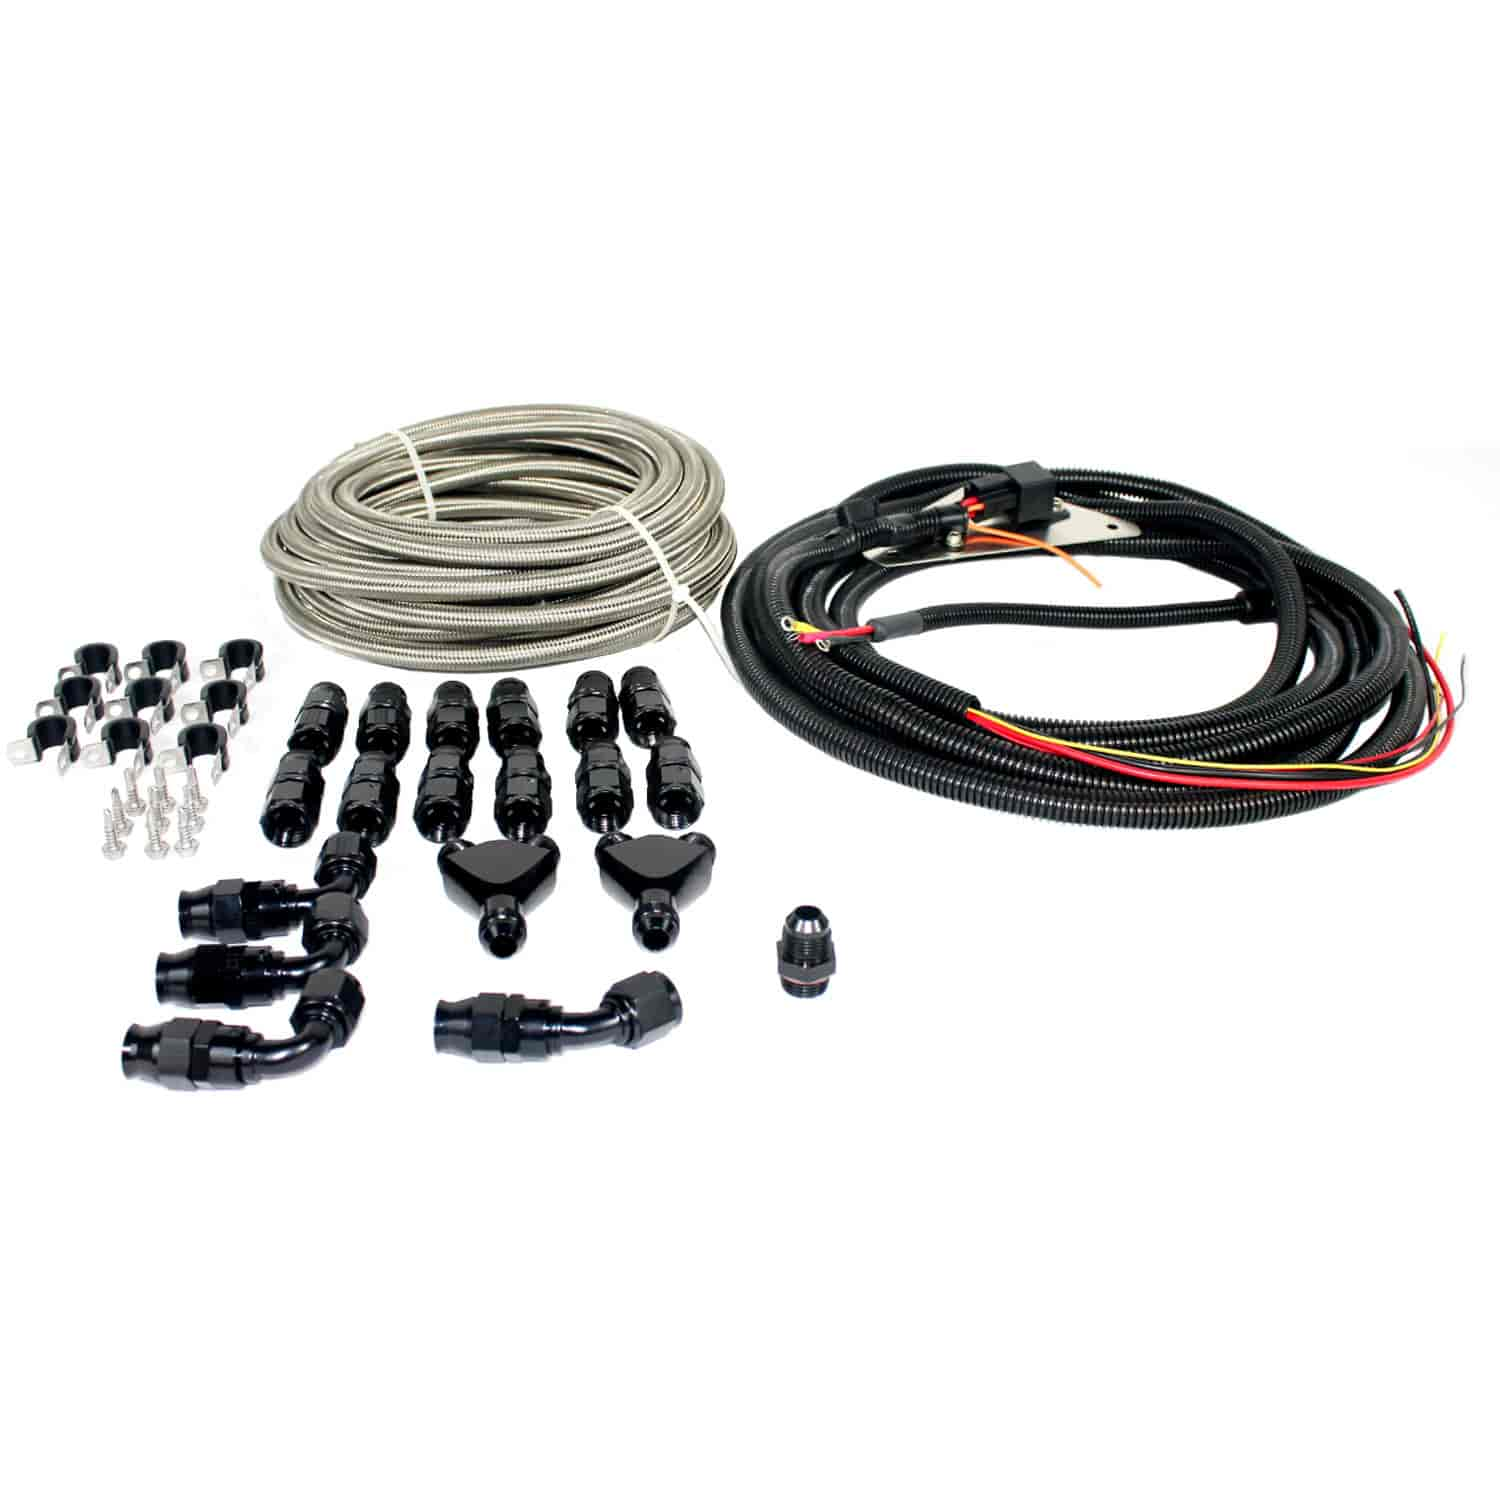 fuelab 21911 plumbing and wiring harness kit for 2005 2009 mustangs e85 compatible jegs. Black Bedroom Furniture Sets. Home Design Ideas